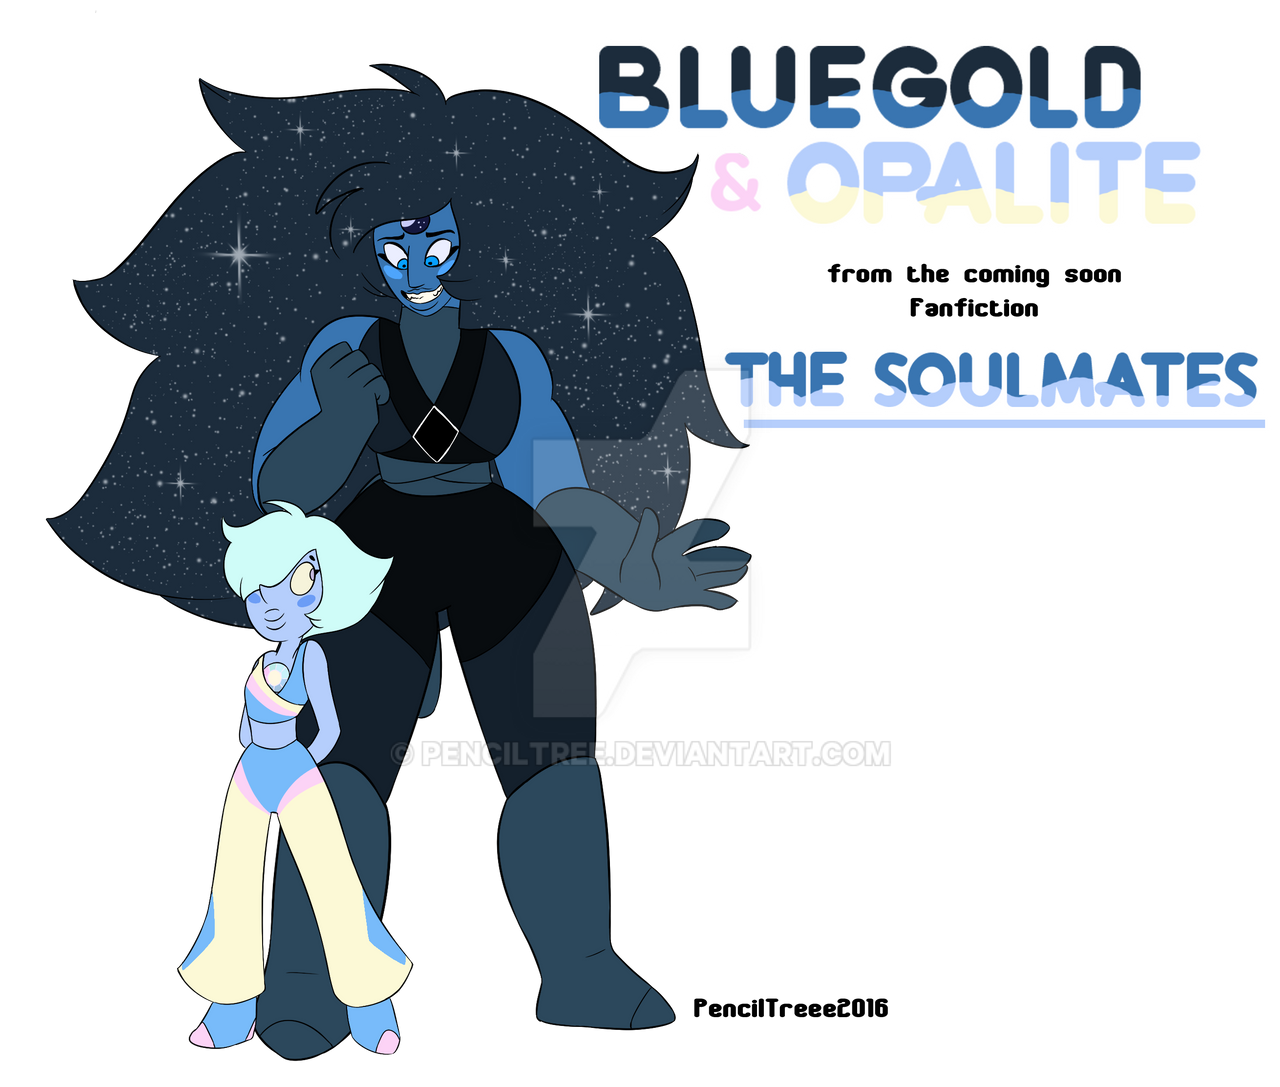 Steven Universe Fanfiction Coming Soon By Penciltree